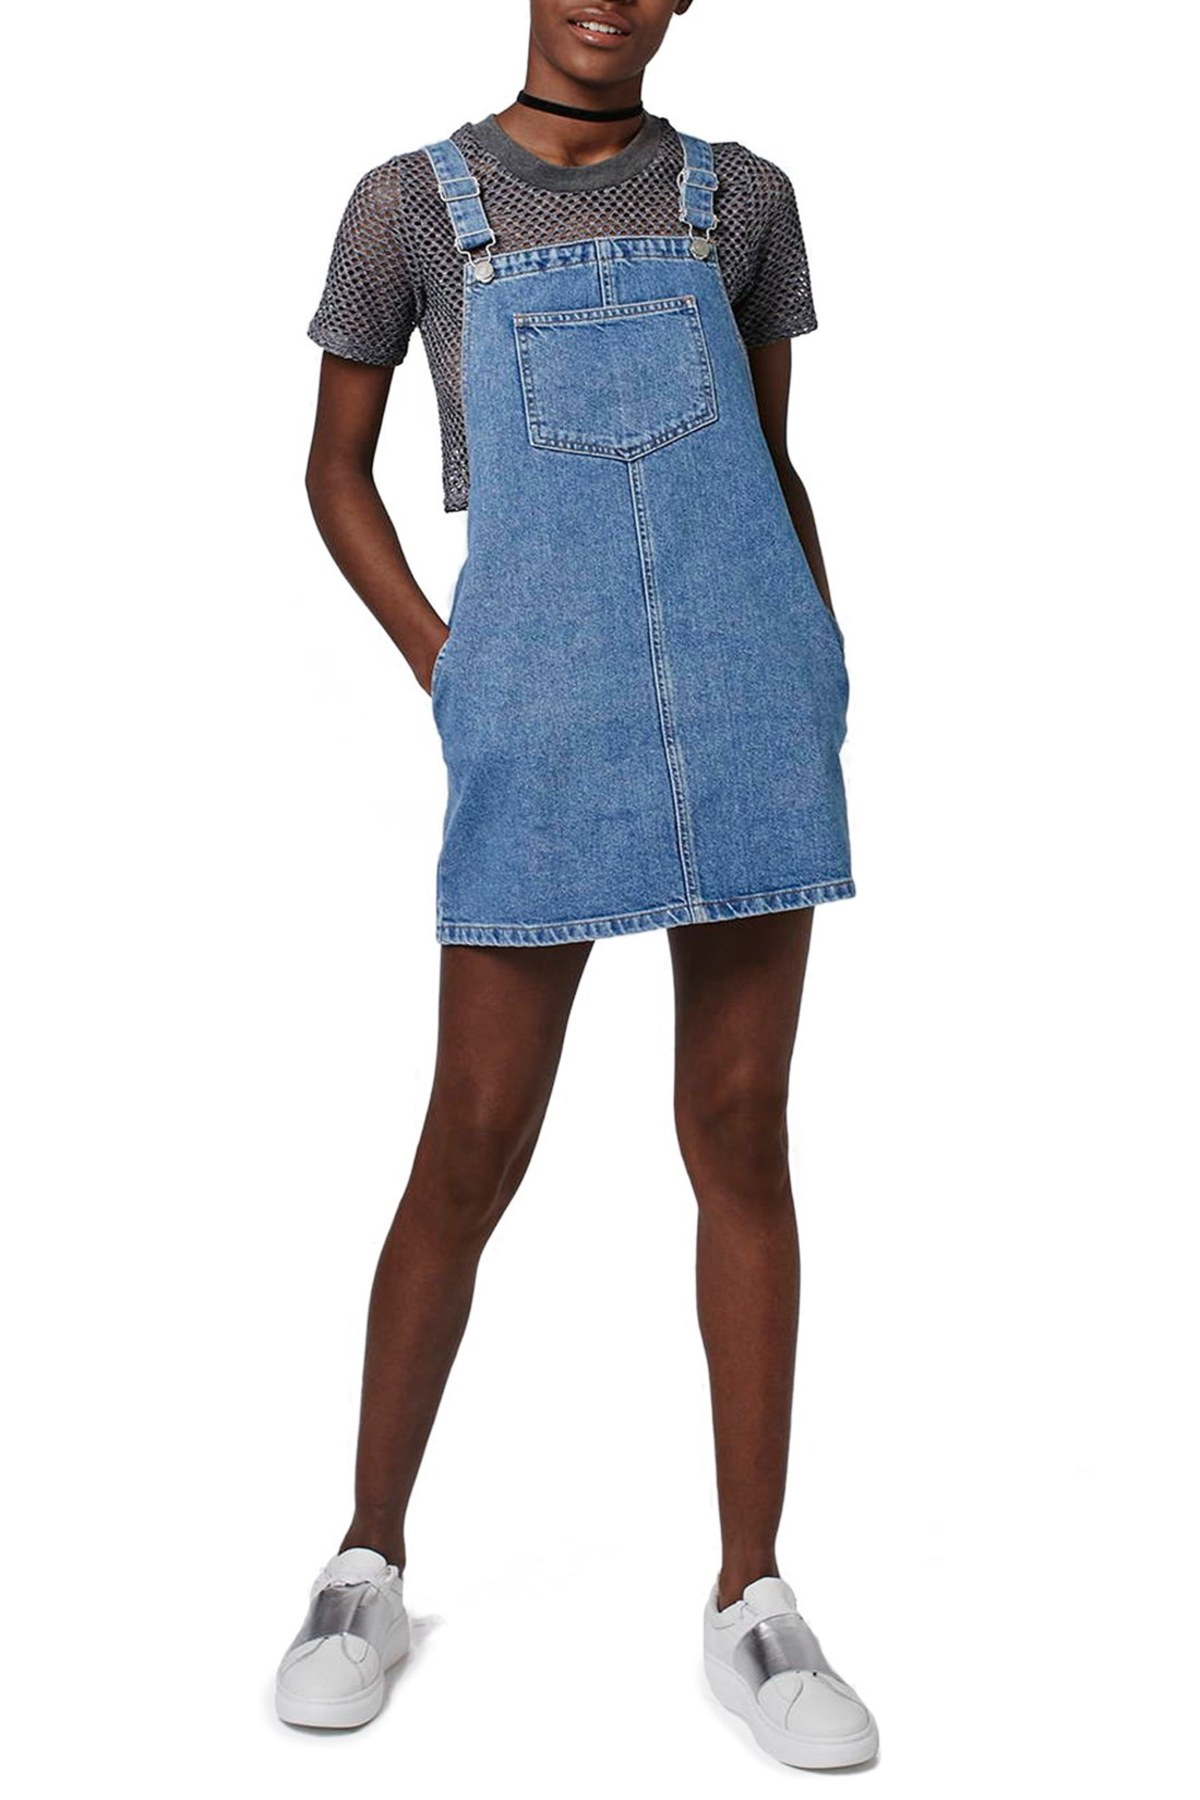 Topshop denim pinafore dress petite lyst for Womens denim shirts topshop